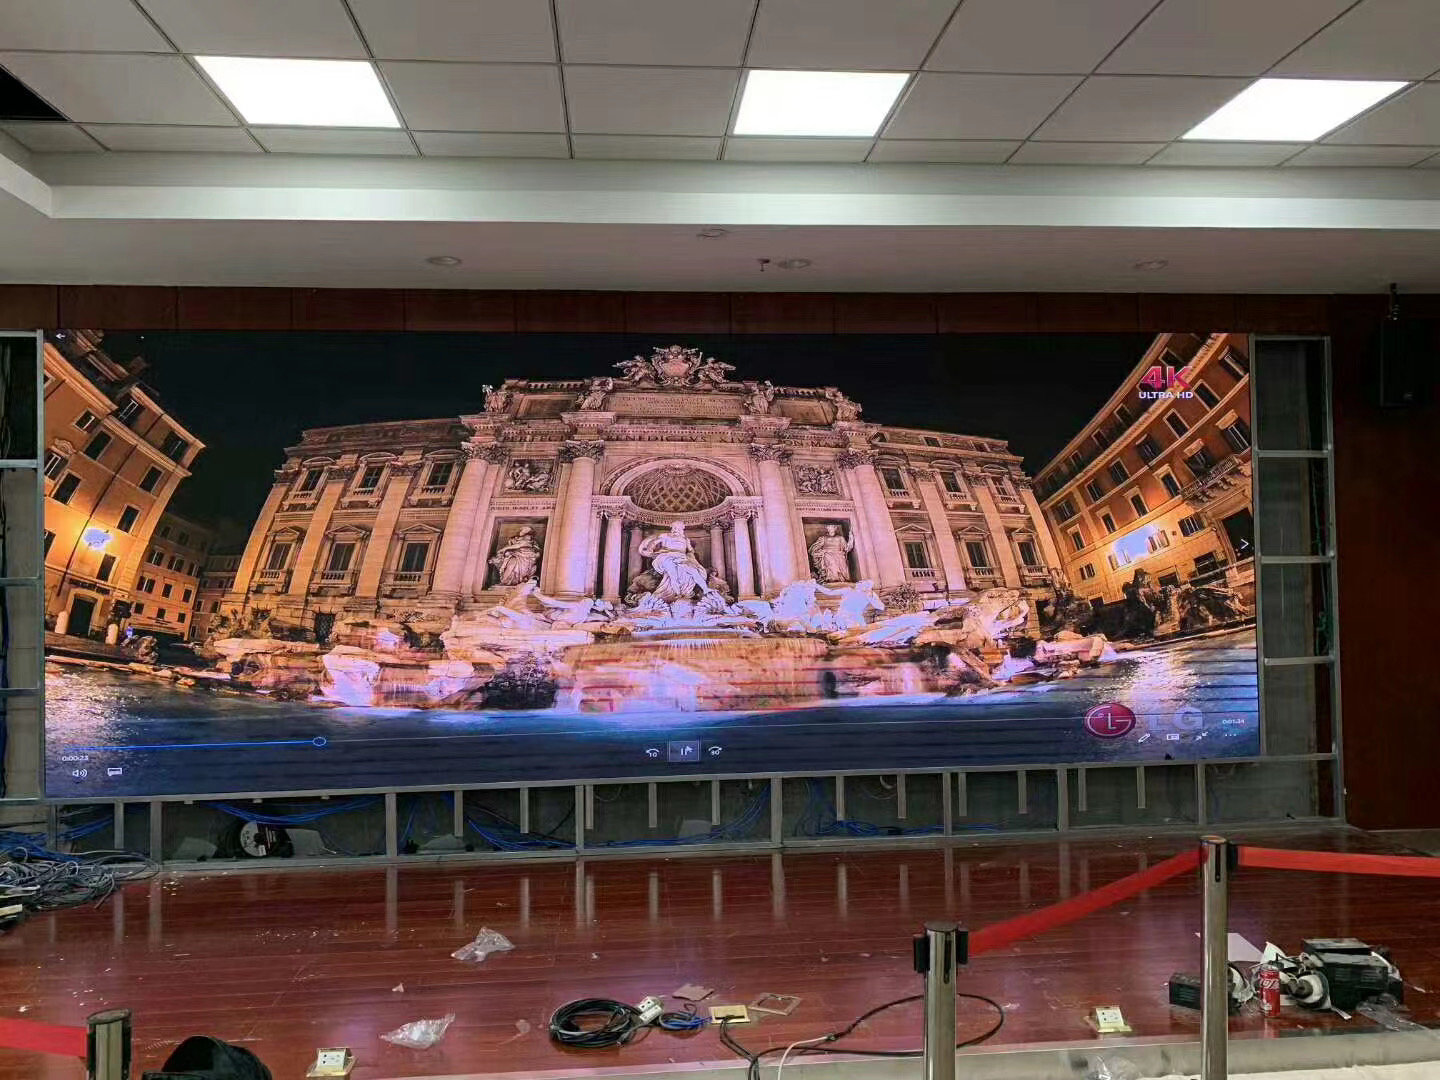 GKGD Indoor P2 Led Screen Project In One Company's Conference Room.